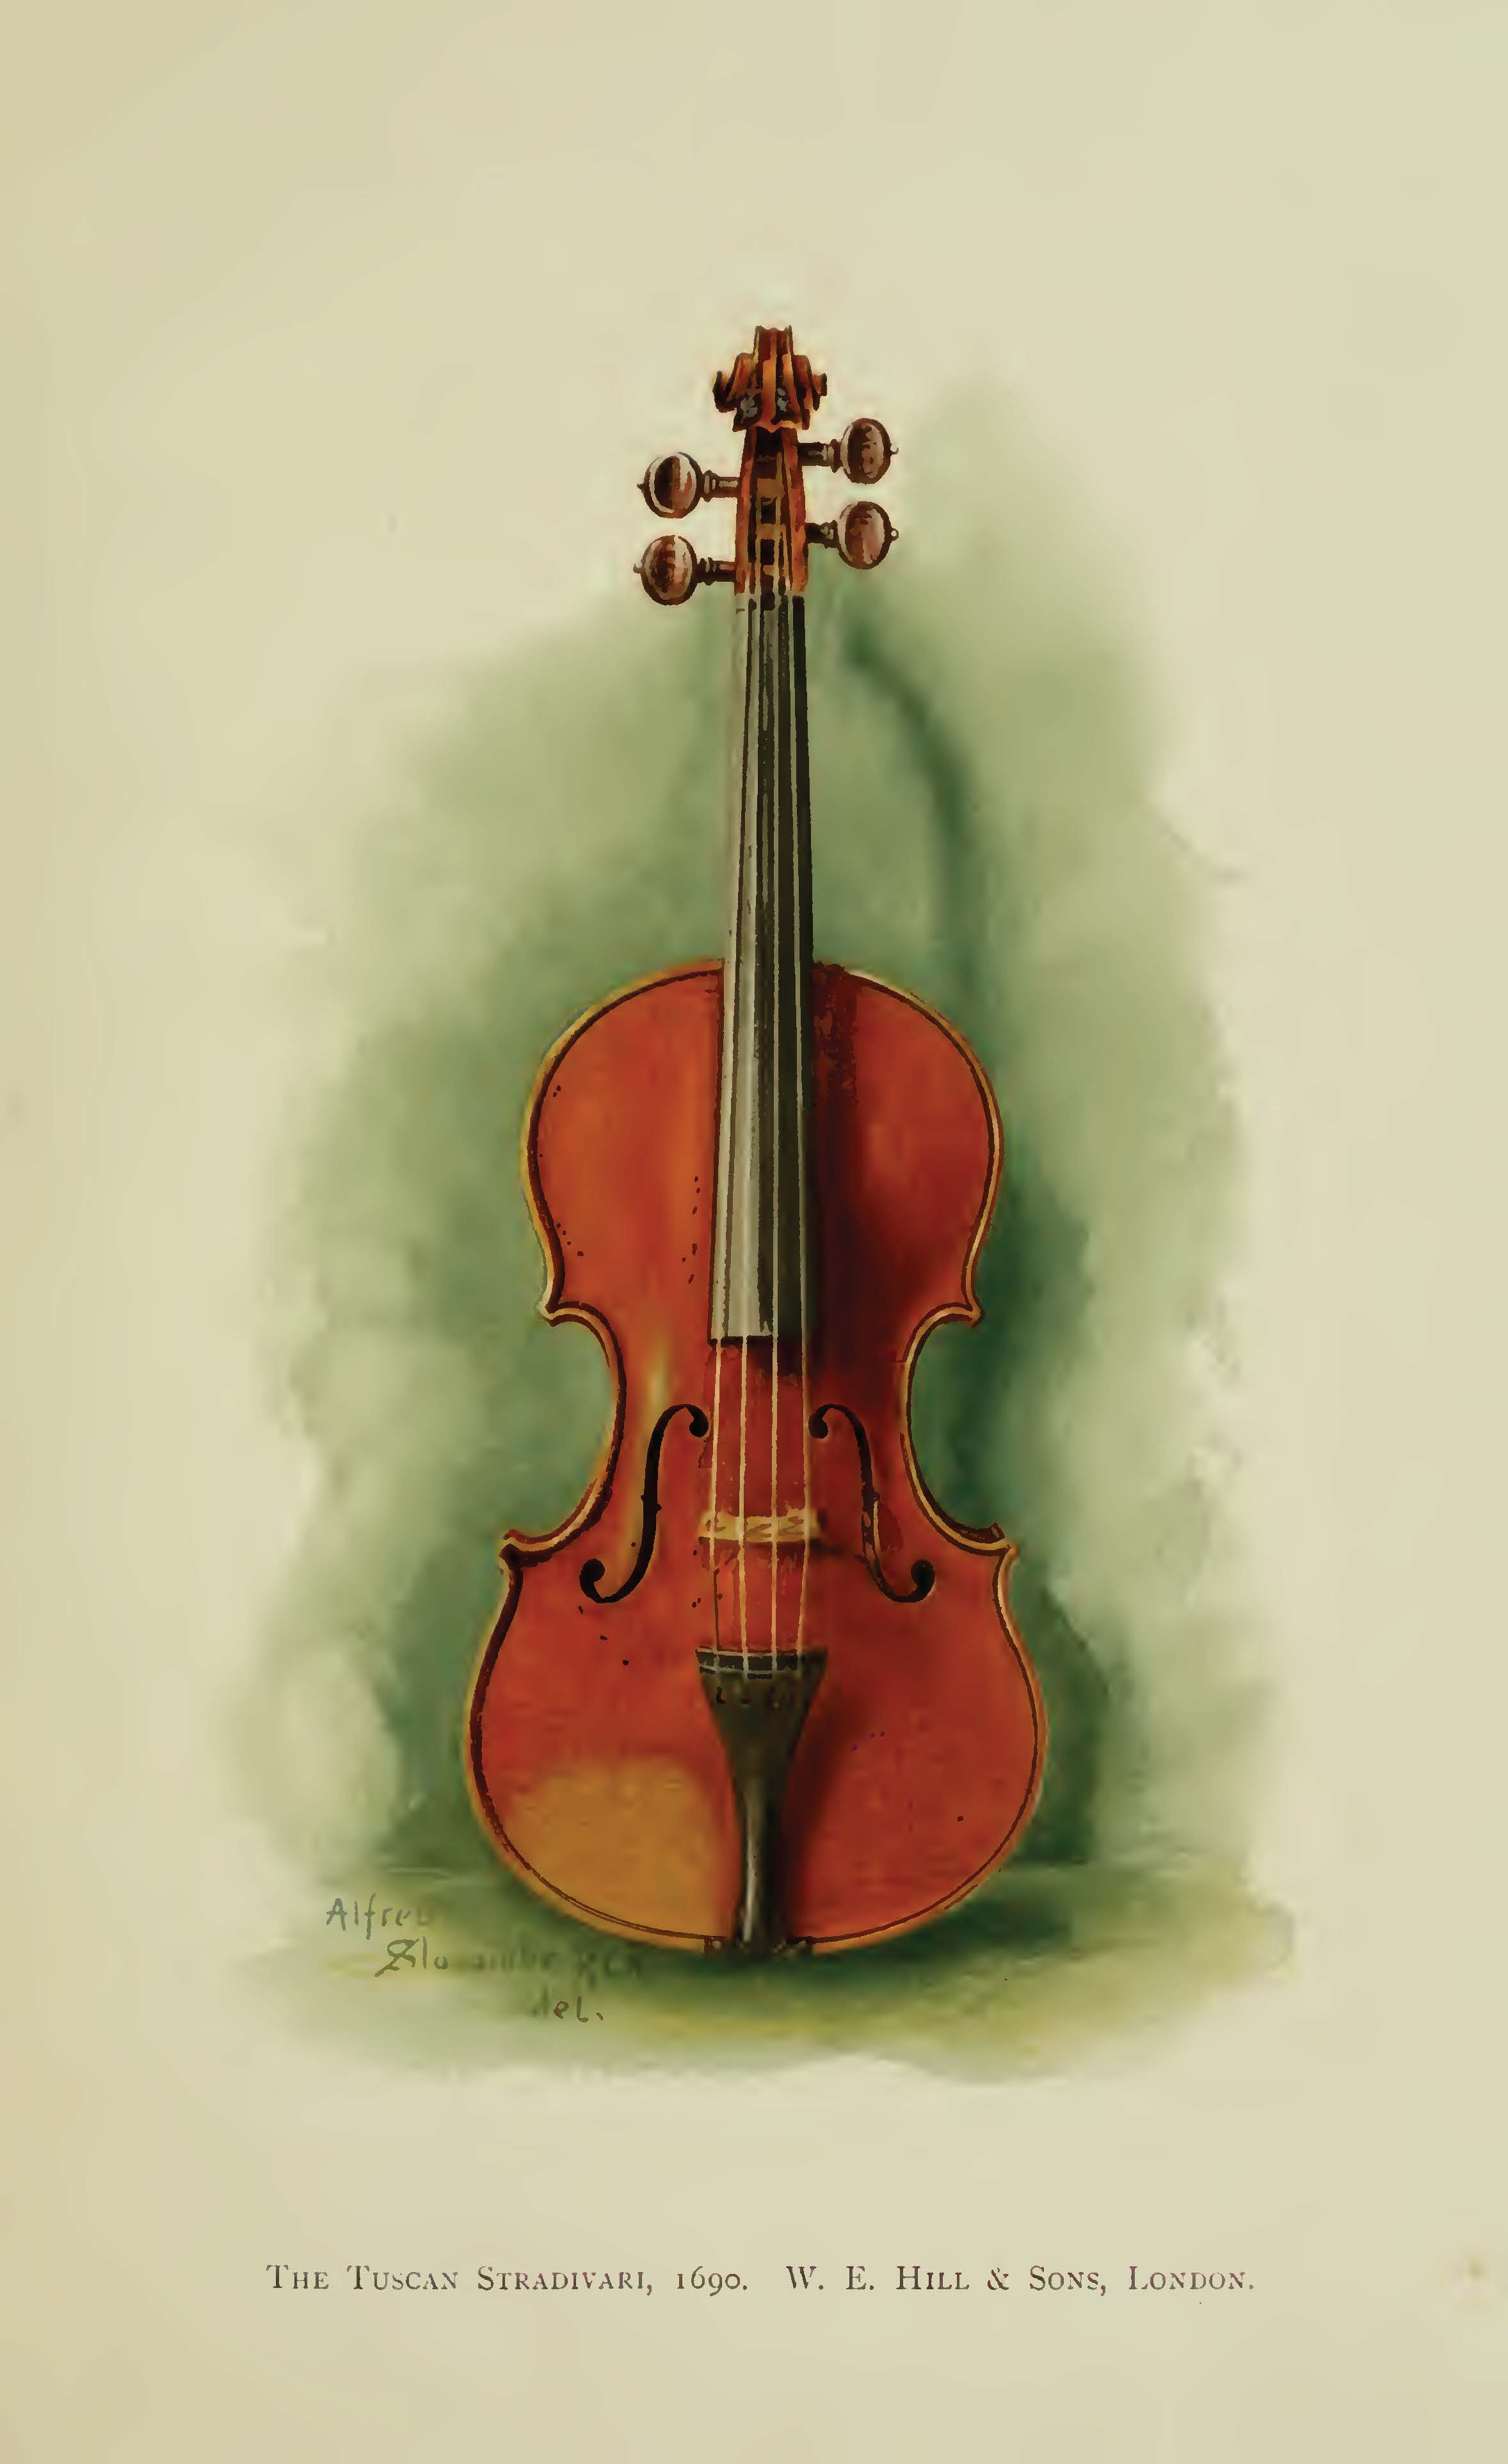 history of violin A history of the violin, when it was invented and how it has evolved over time and influenced music.